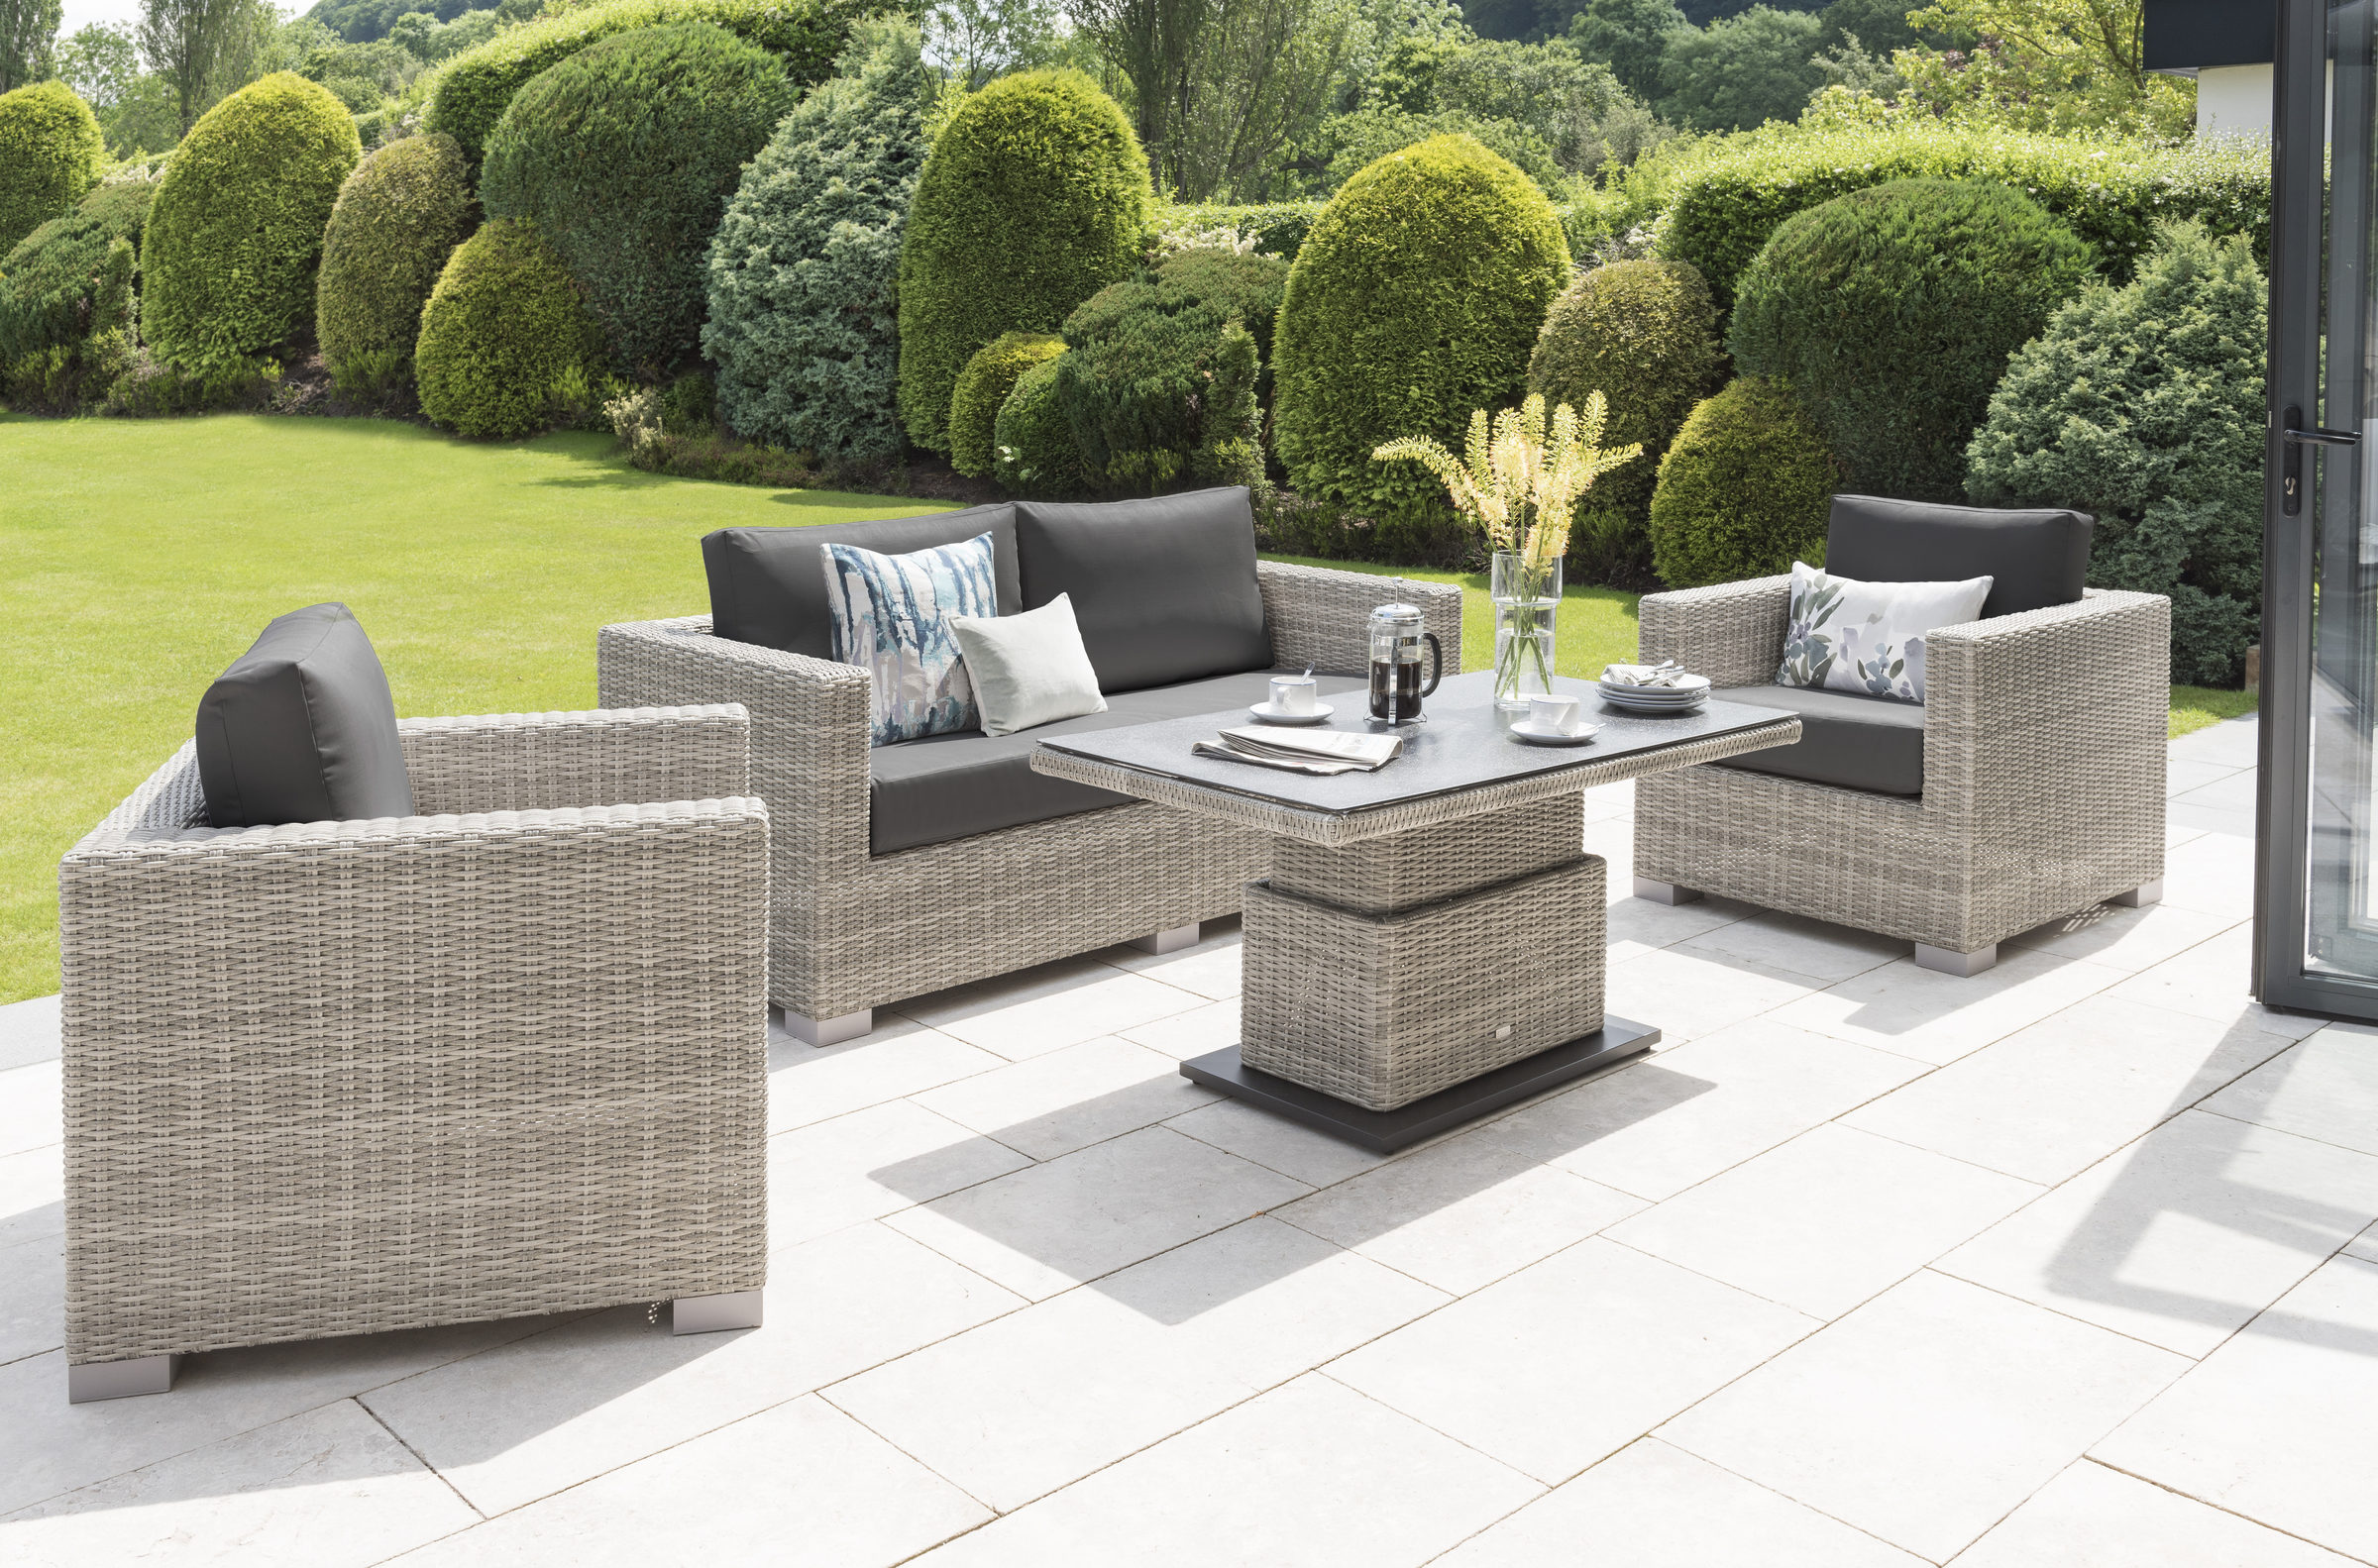 Life Outdoor Living Aya Lounge Set with Adjustable Table and Poof 2019